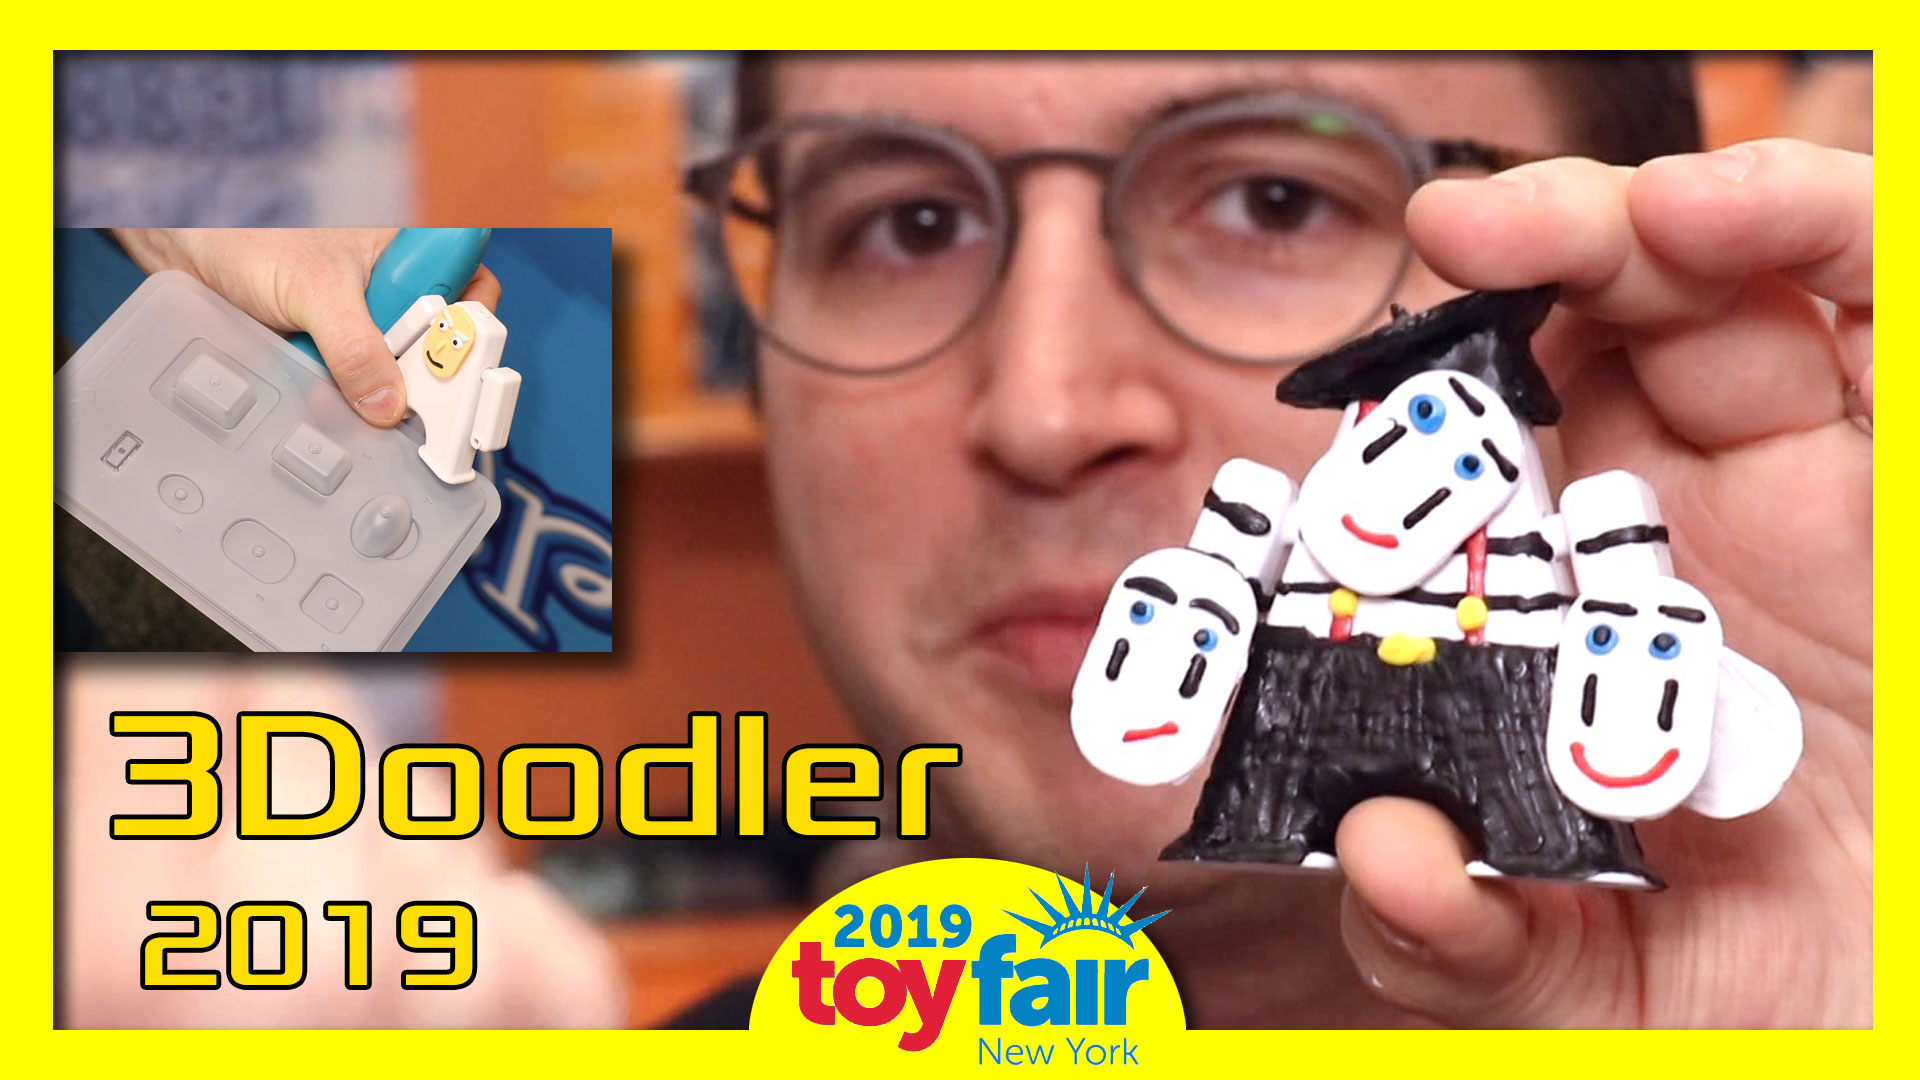 3Doodler at ToyFair19